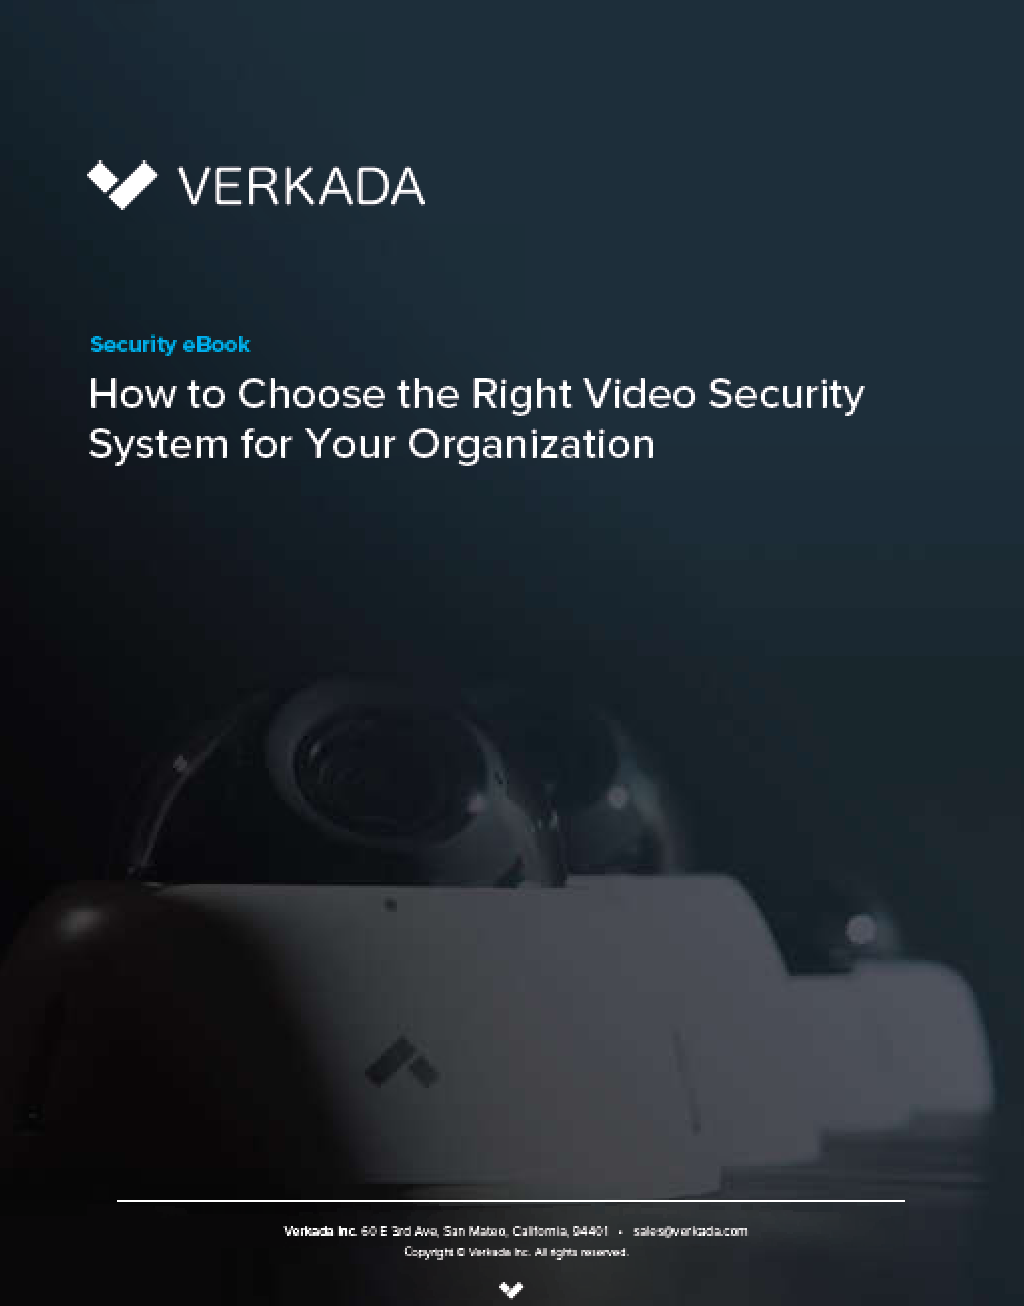 Choosing the Right Video Security System